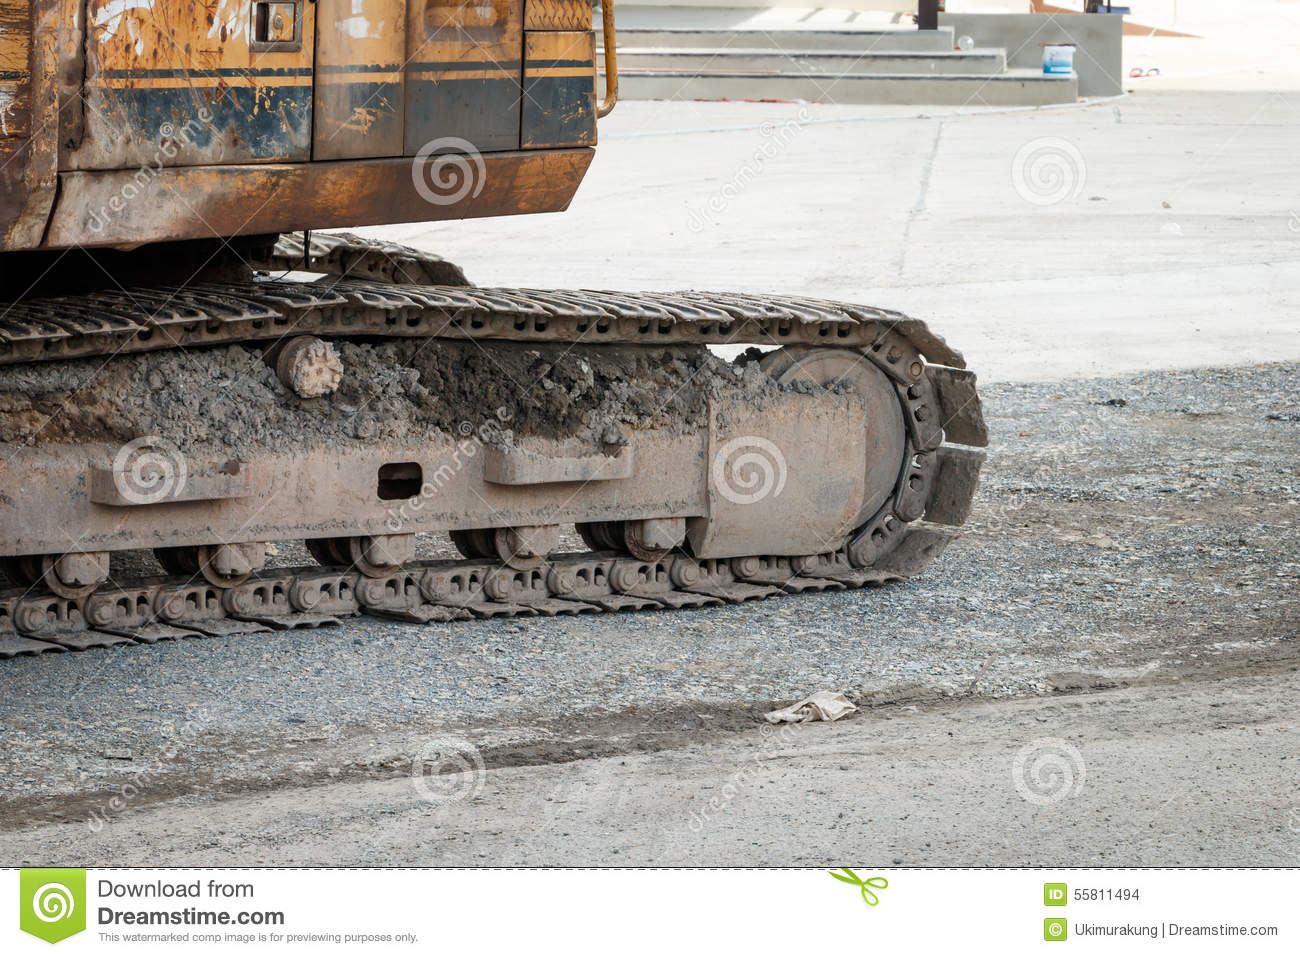 excavator-dirty-track-close-up-old-tract